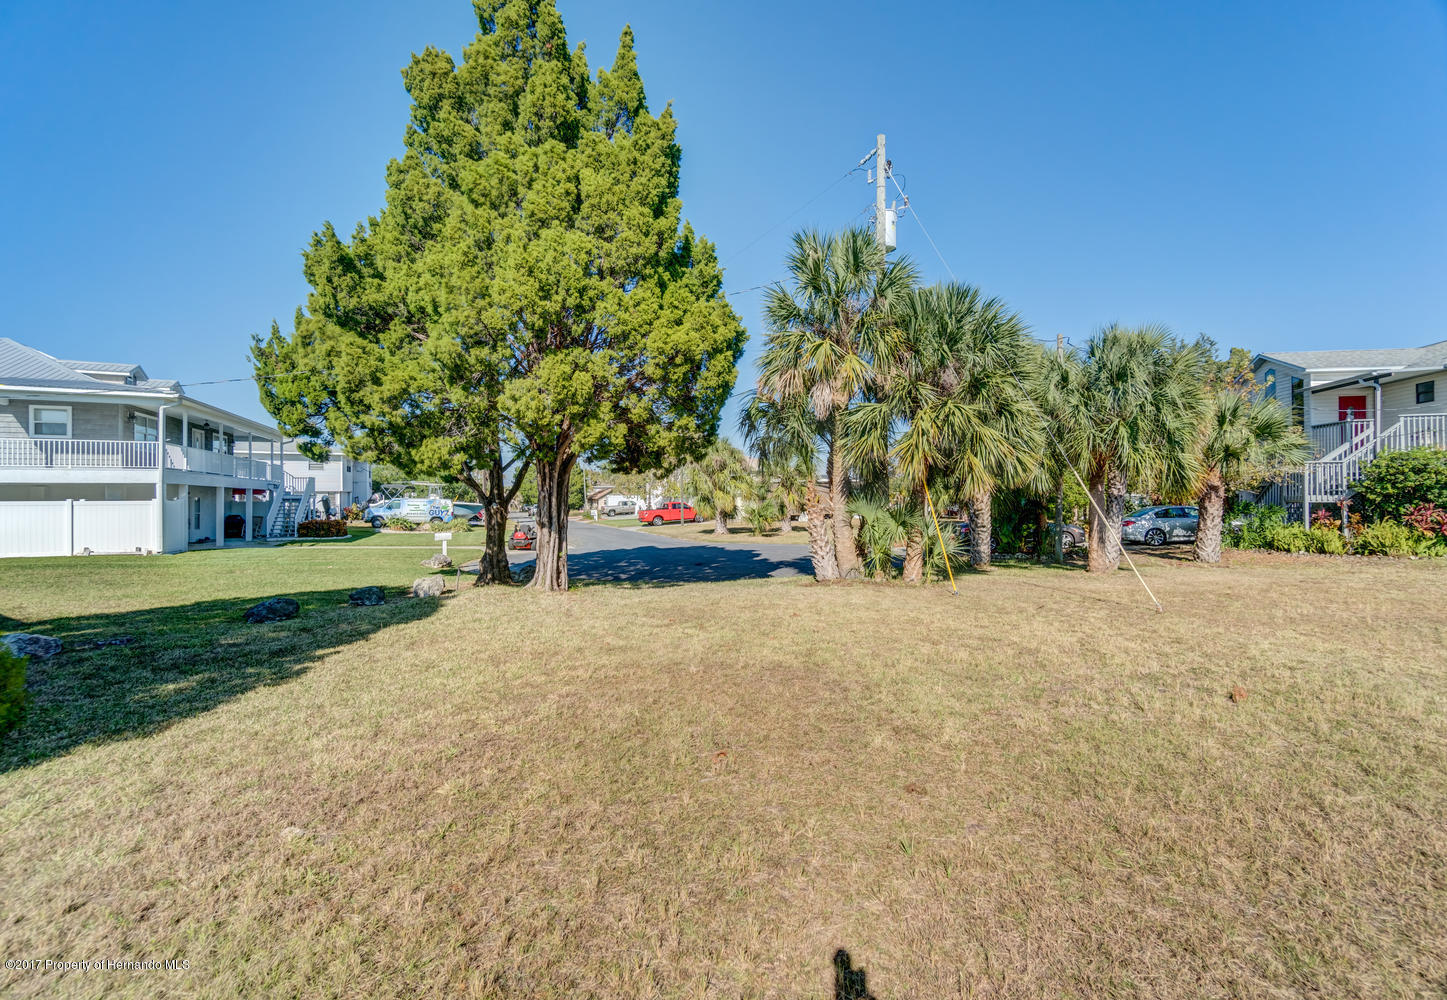 Bermuda Dr Lot 11 Hernando-large-022-22-